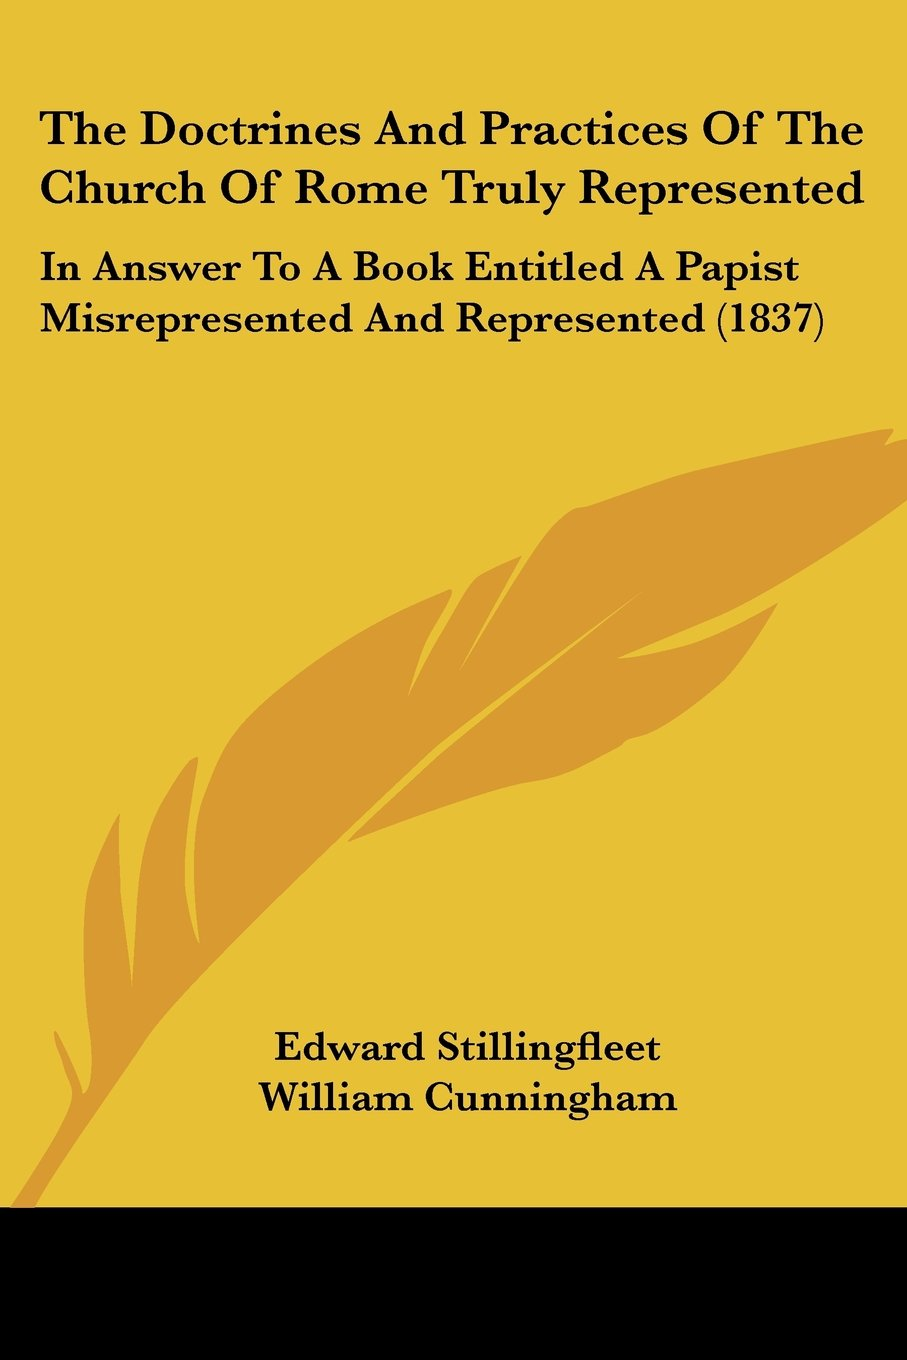 Download The Doctrines And Practices Of The Church Of Rome Truly Represented: In Answer To A Book Entitled A Papist Misrepresented And Represented (1837) pdf epub